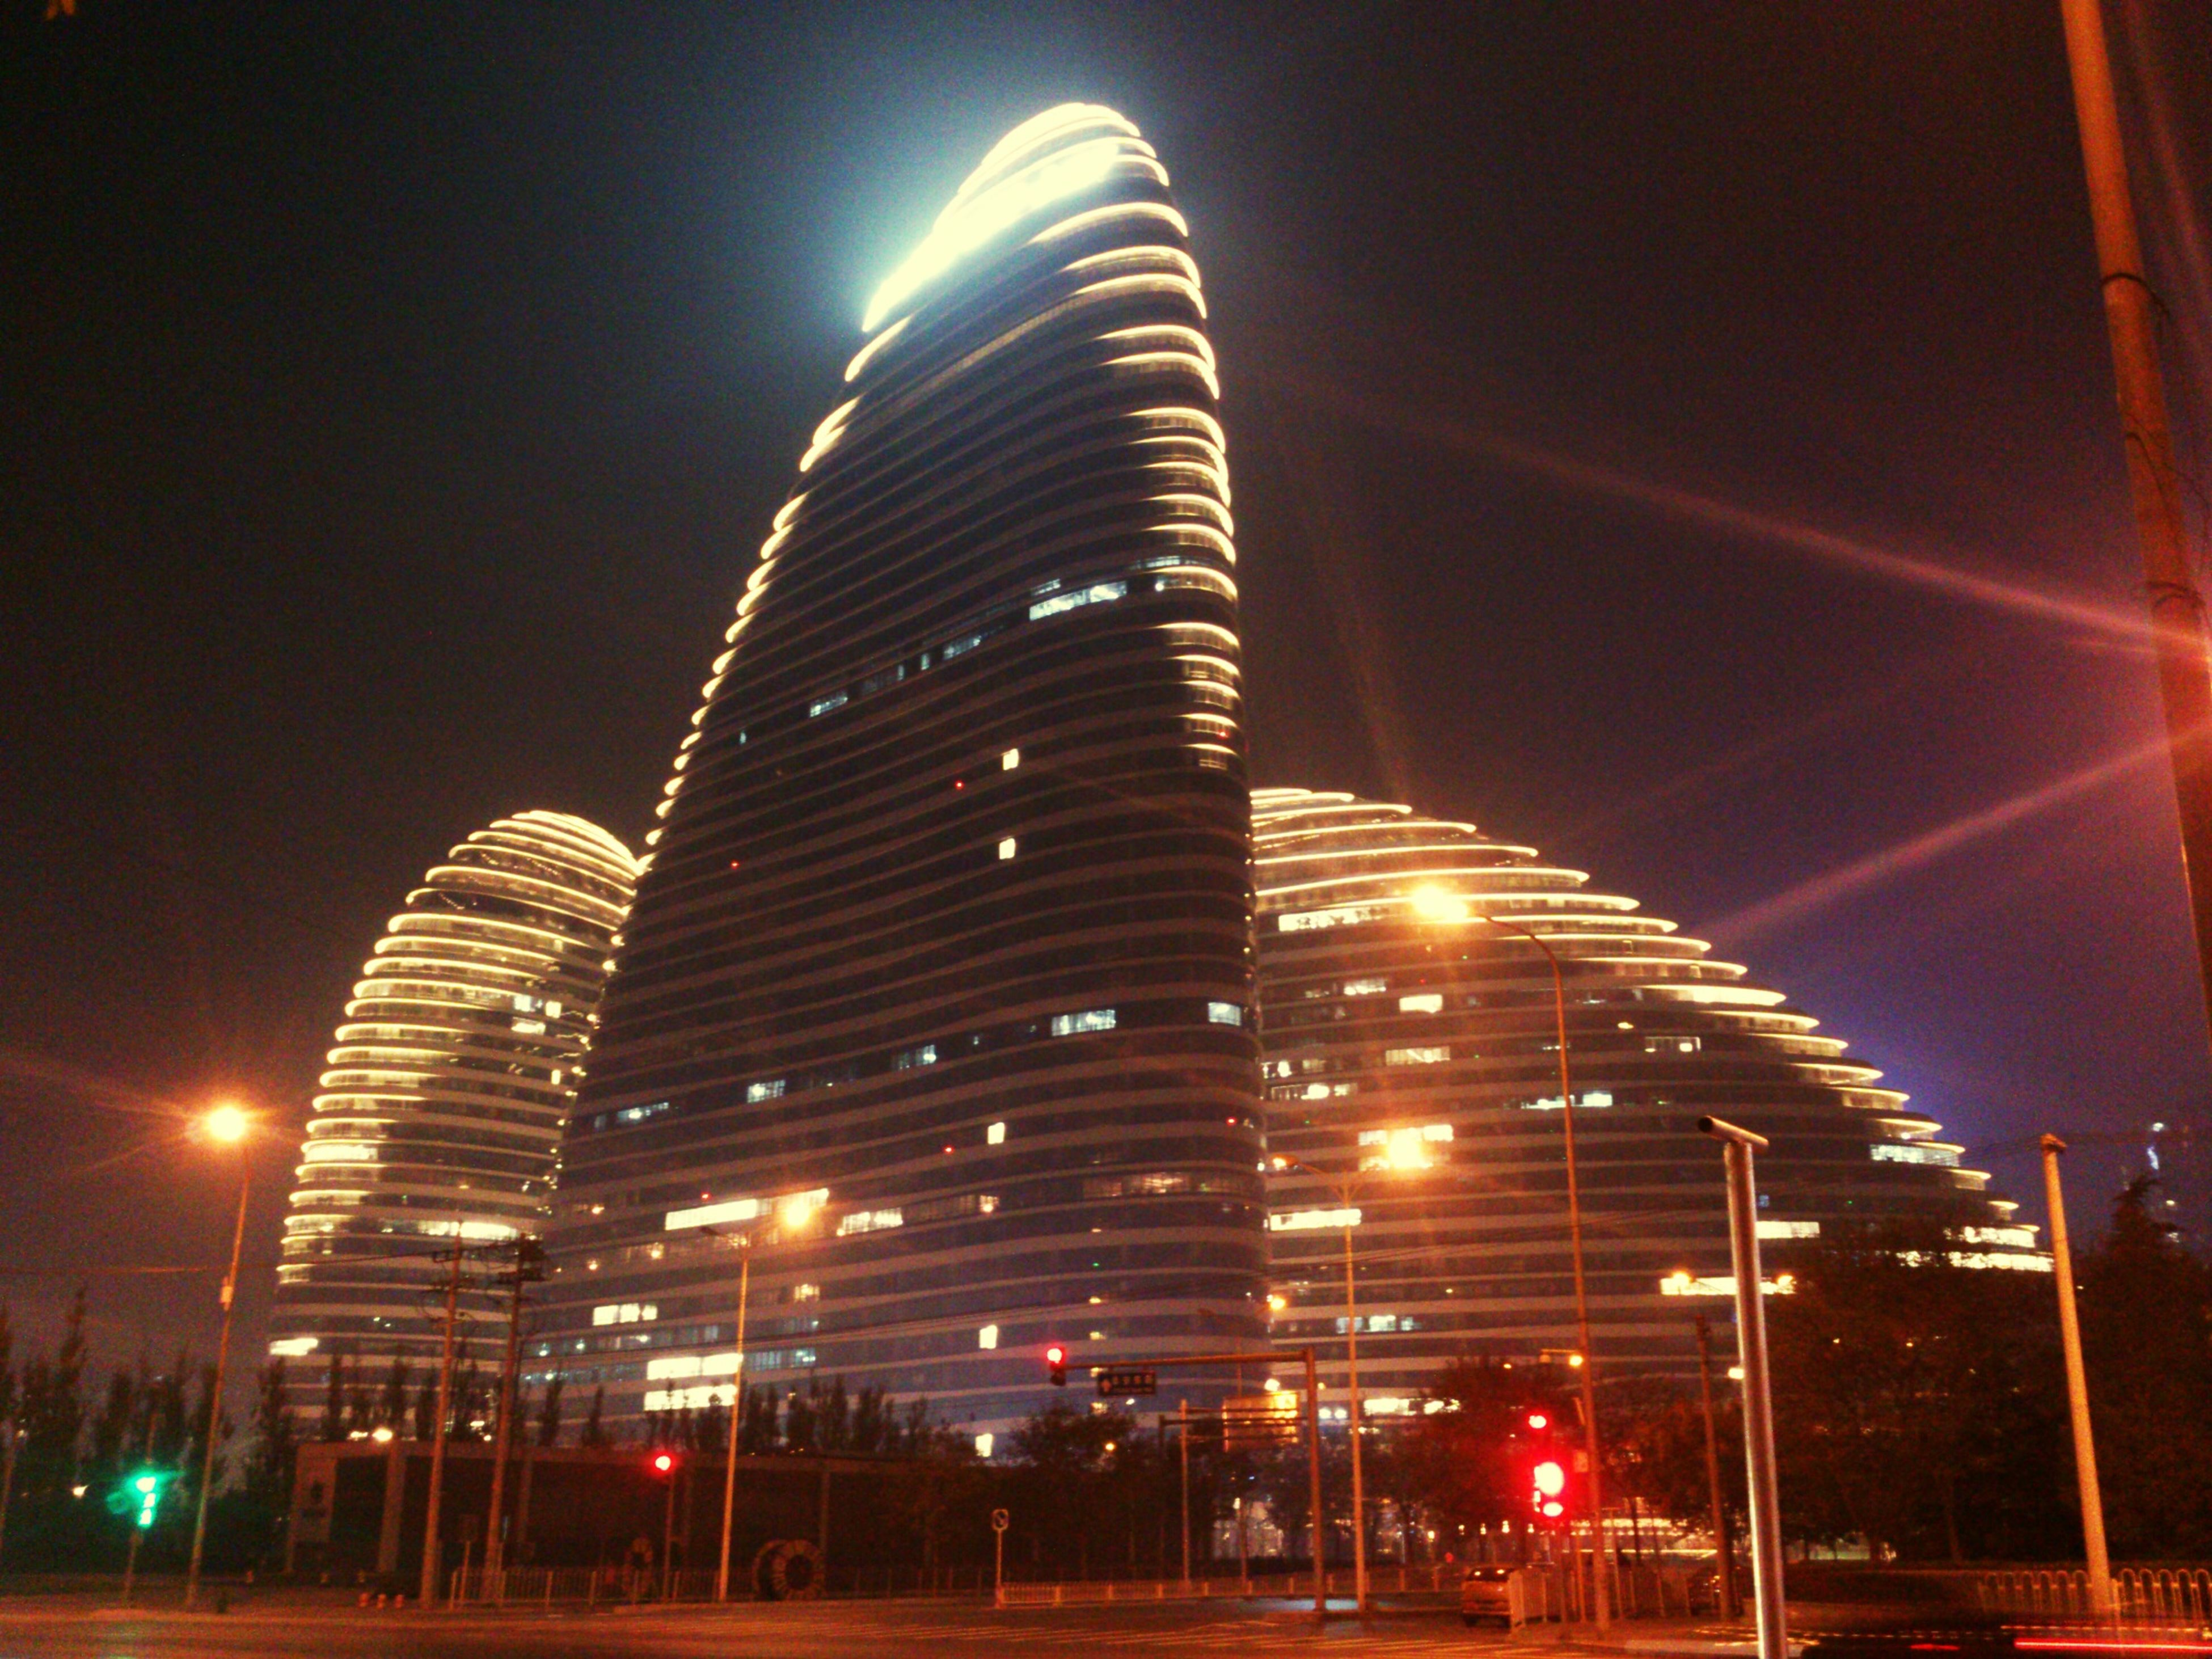 illuminated, night, architecture, built structure, building exterior, low angle view, city, modern, street light, skyscraper, lighting equipment, sky, office building, building, tall - high, street, transportation, long exposure, road, city life